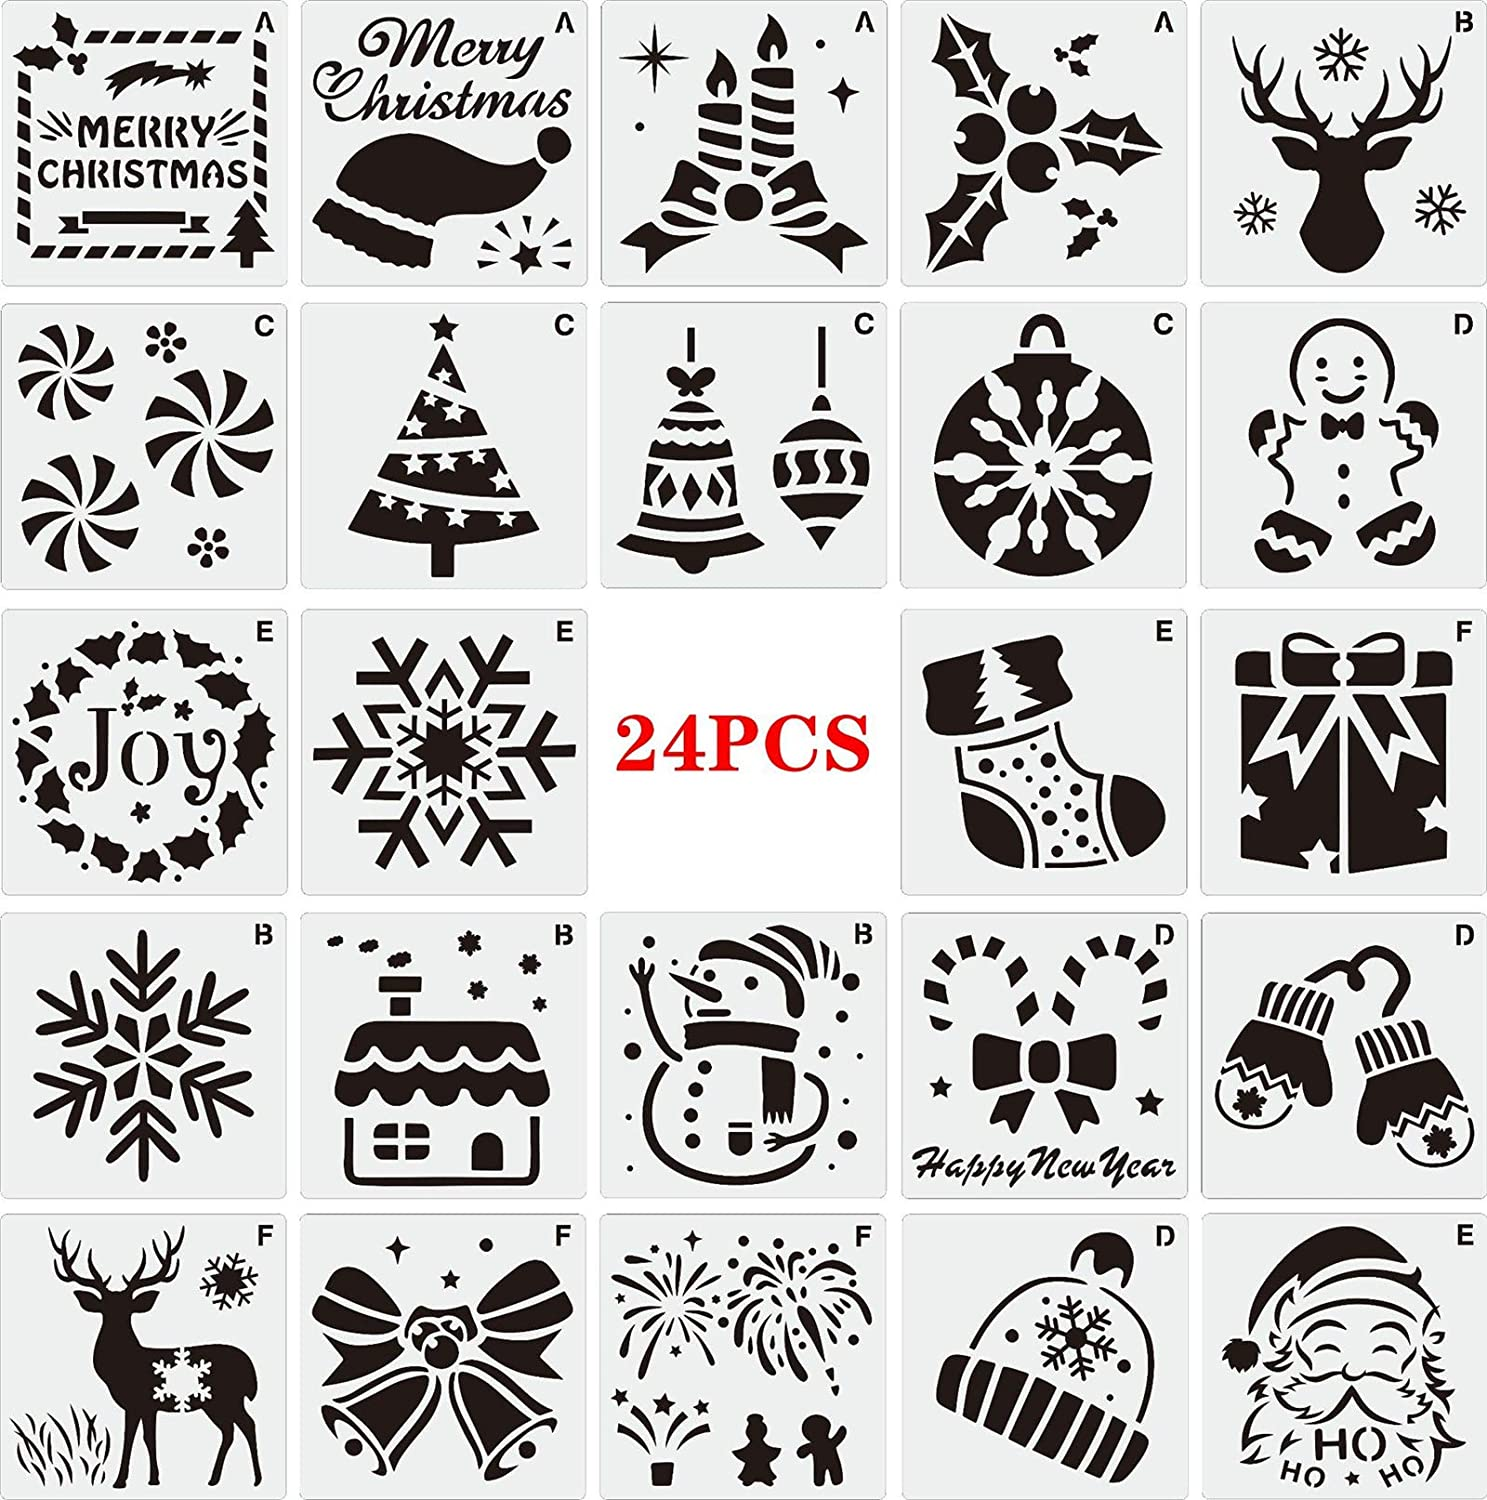 Christmas Painting Stencils 3 x 3 Inch Templates Reusable Plastic Sign Stencils Template for Wood Slice Scrapbooking Cookie Tile Furniture Wall Floor Decor DIY Art Supplies(24pack-Christmas Element)